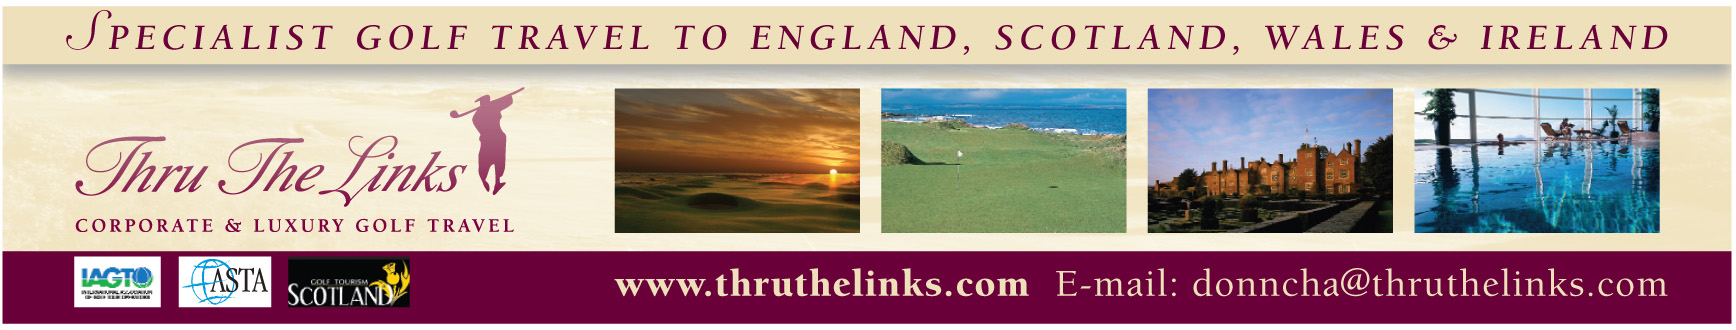 Thru_the_links_logo_header_2010